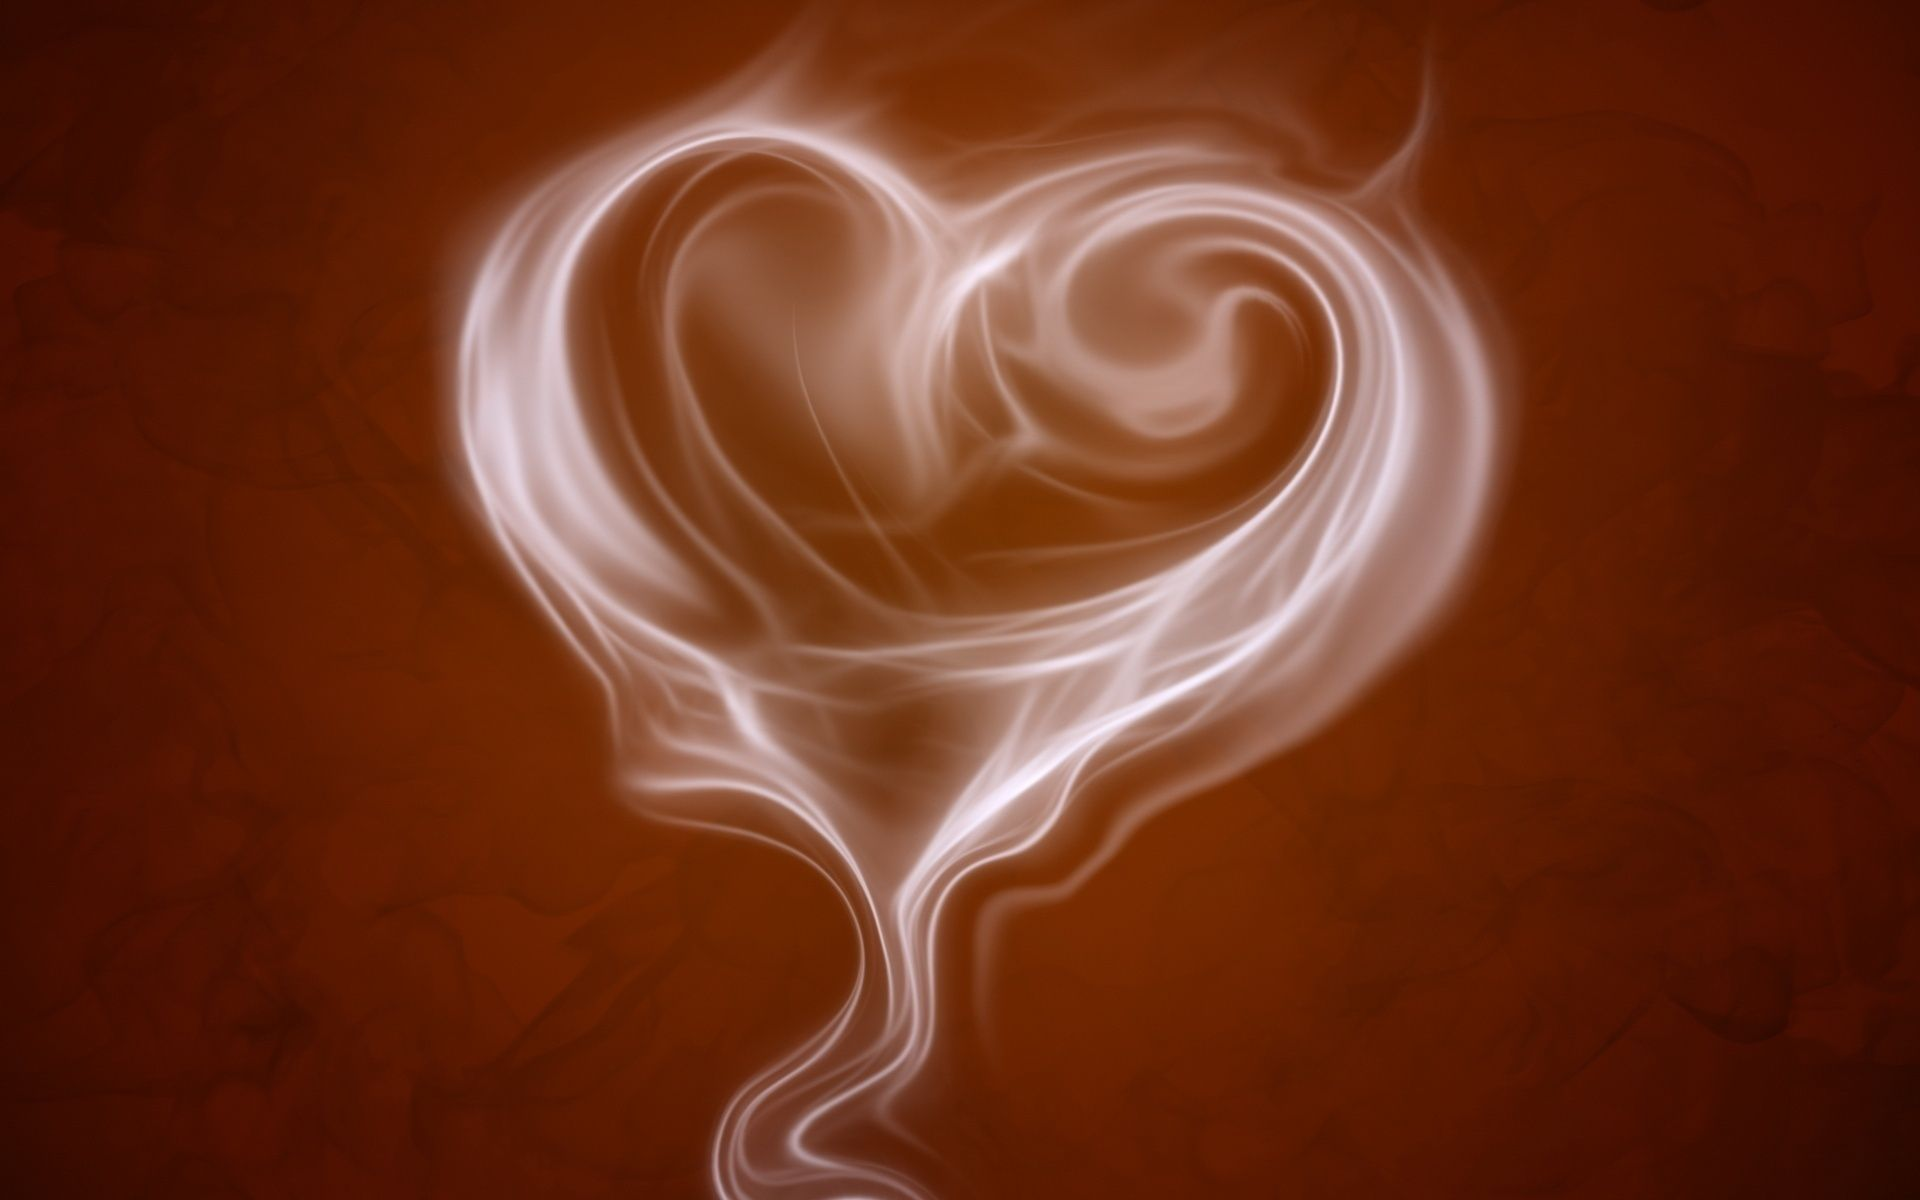 Love The Idea Of Smoke Forming A Heart Could Be An In Between